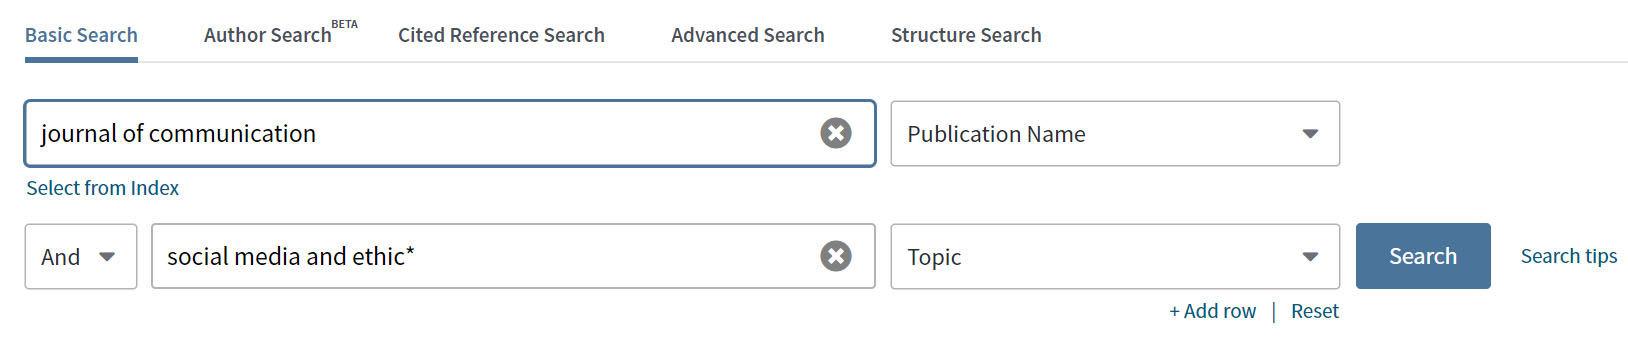 Screen shot showing journal source limit in Web of Science database.